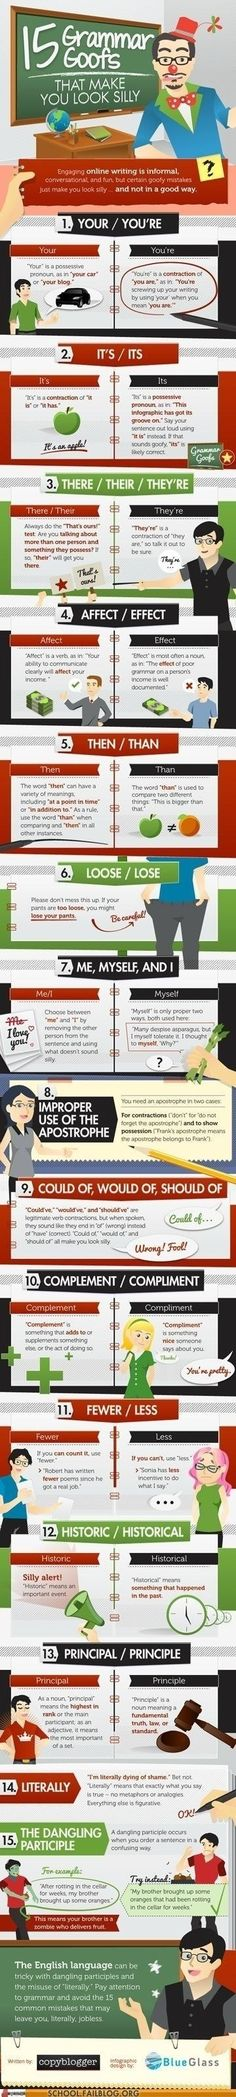 15 Common Writing Mistakes